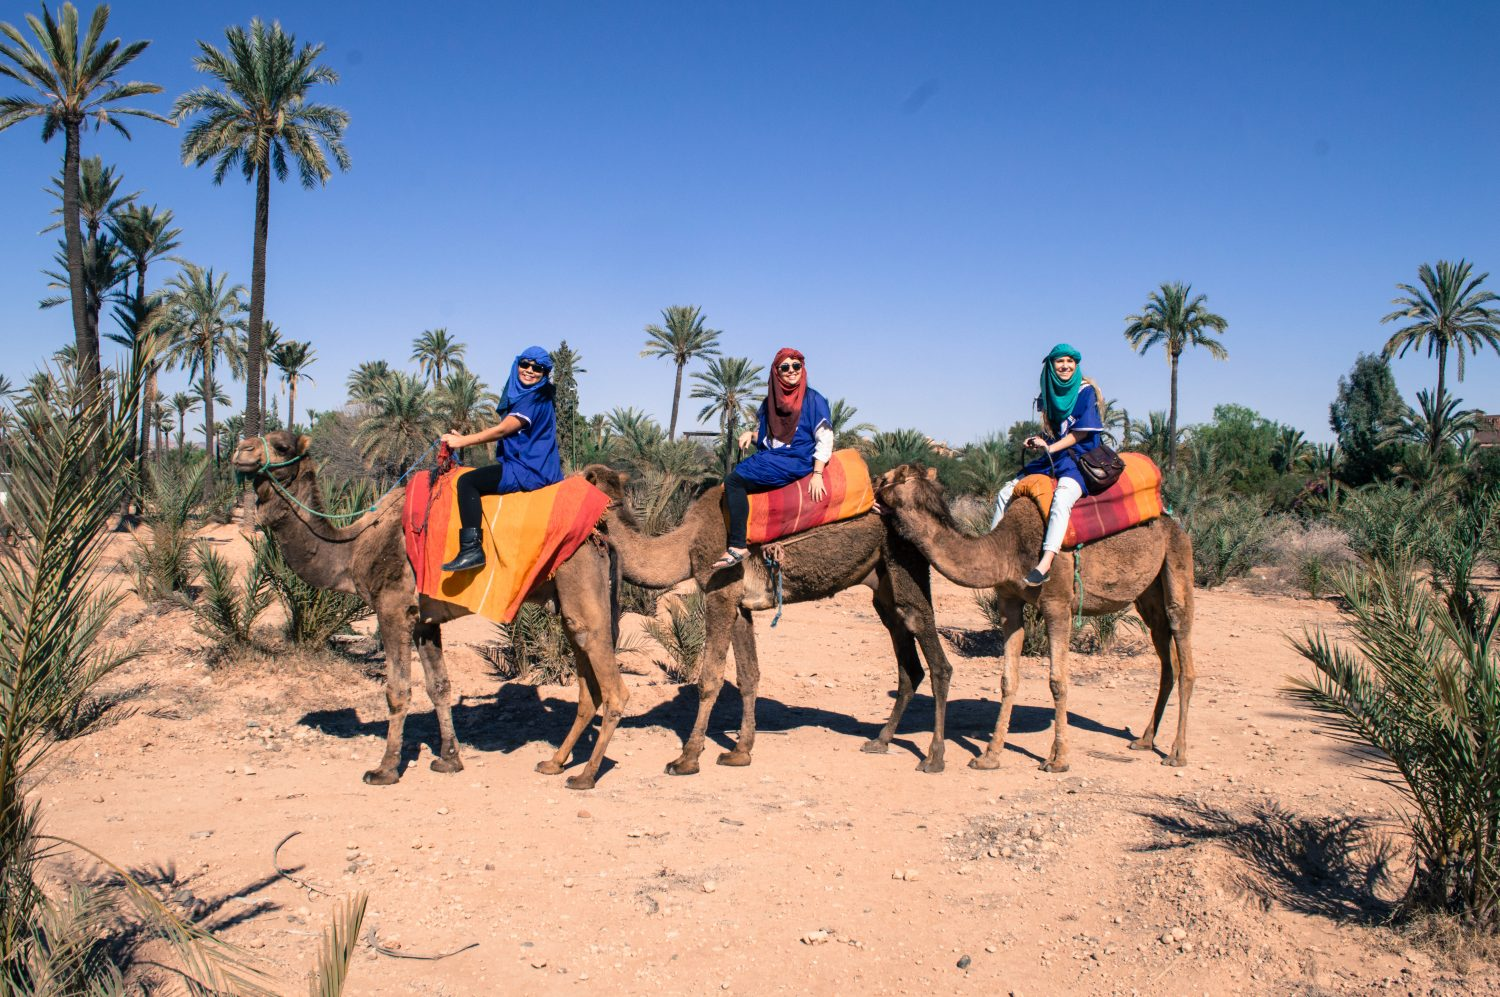 Yes, this happened1 week Morocco itinerary + trip inspiration. Great guide for fun activities in Morocco, places to see and activity suggestions for Marrakesh, Essaouira and the Ouzoud Falls.